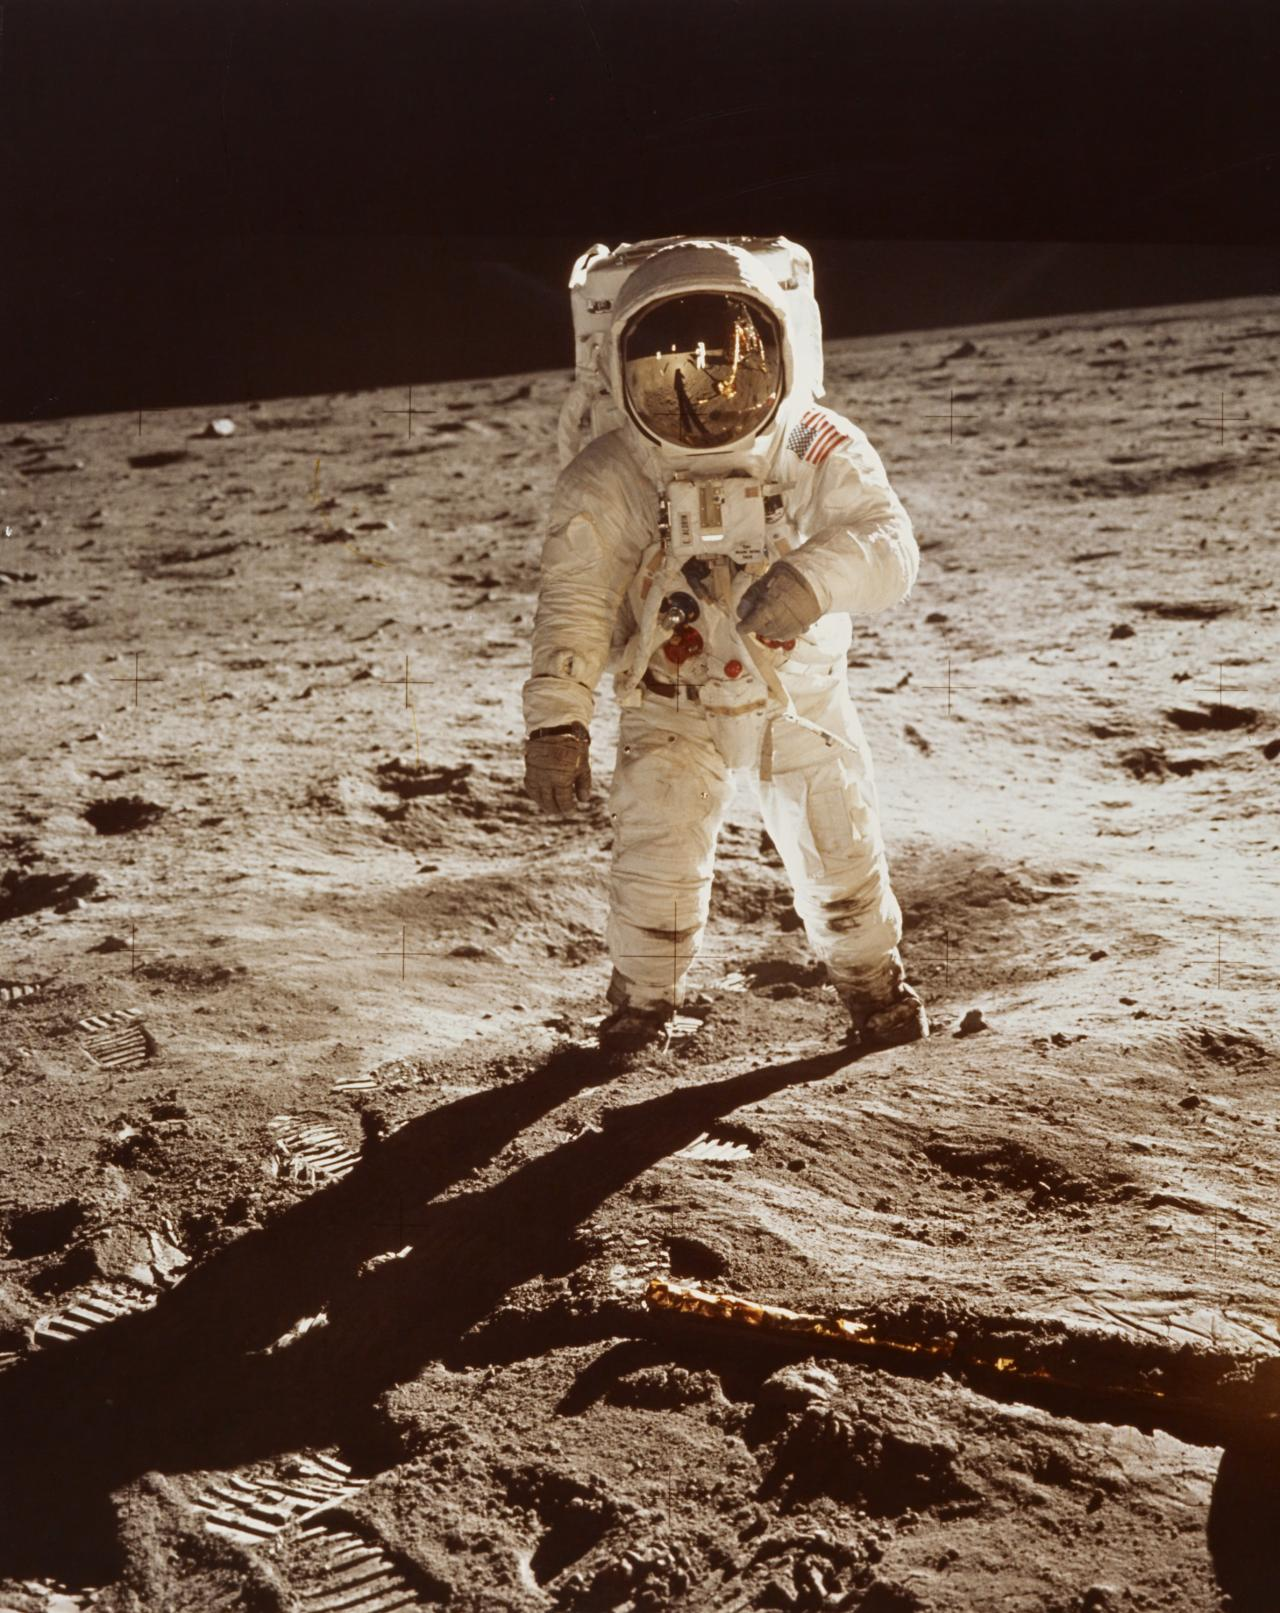 Astronaut Edwin E. Aldrin, Jr., walks on the surface of the moon